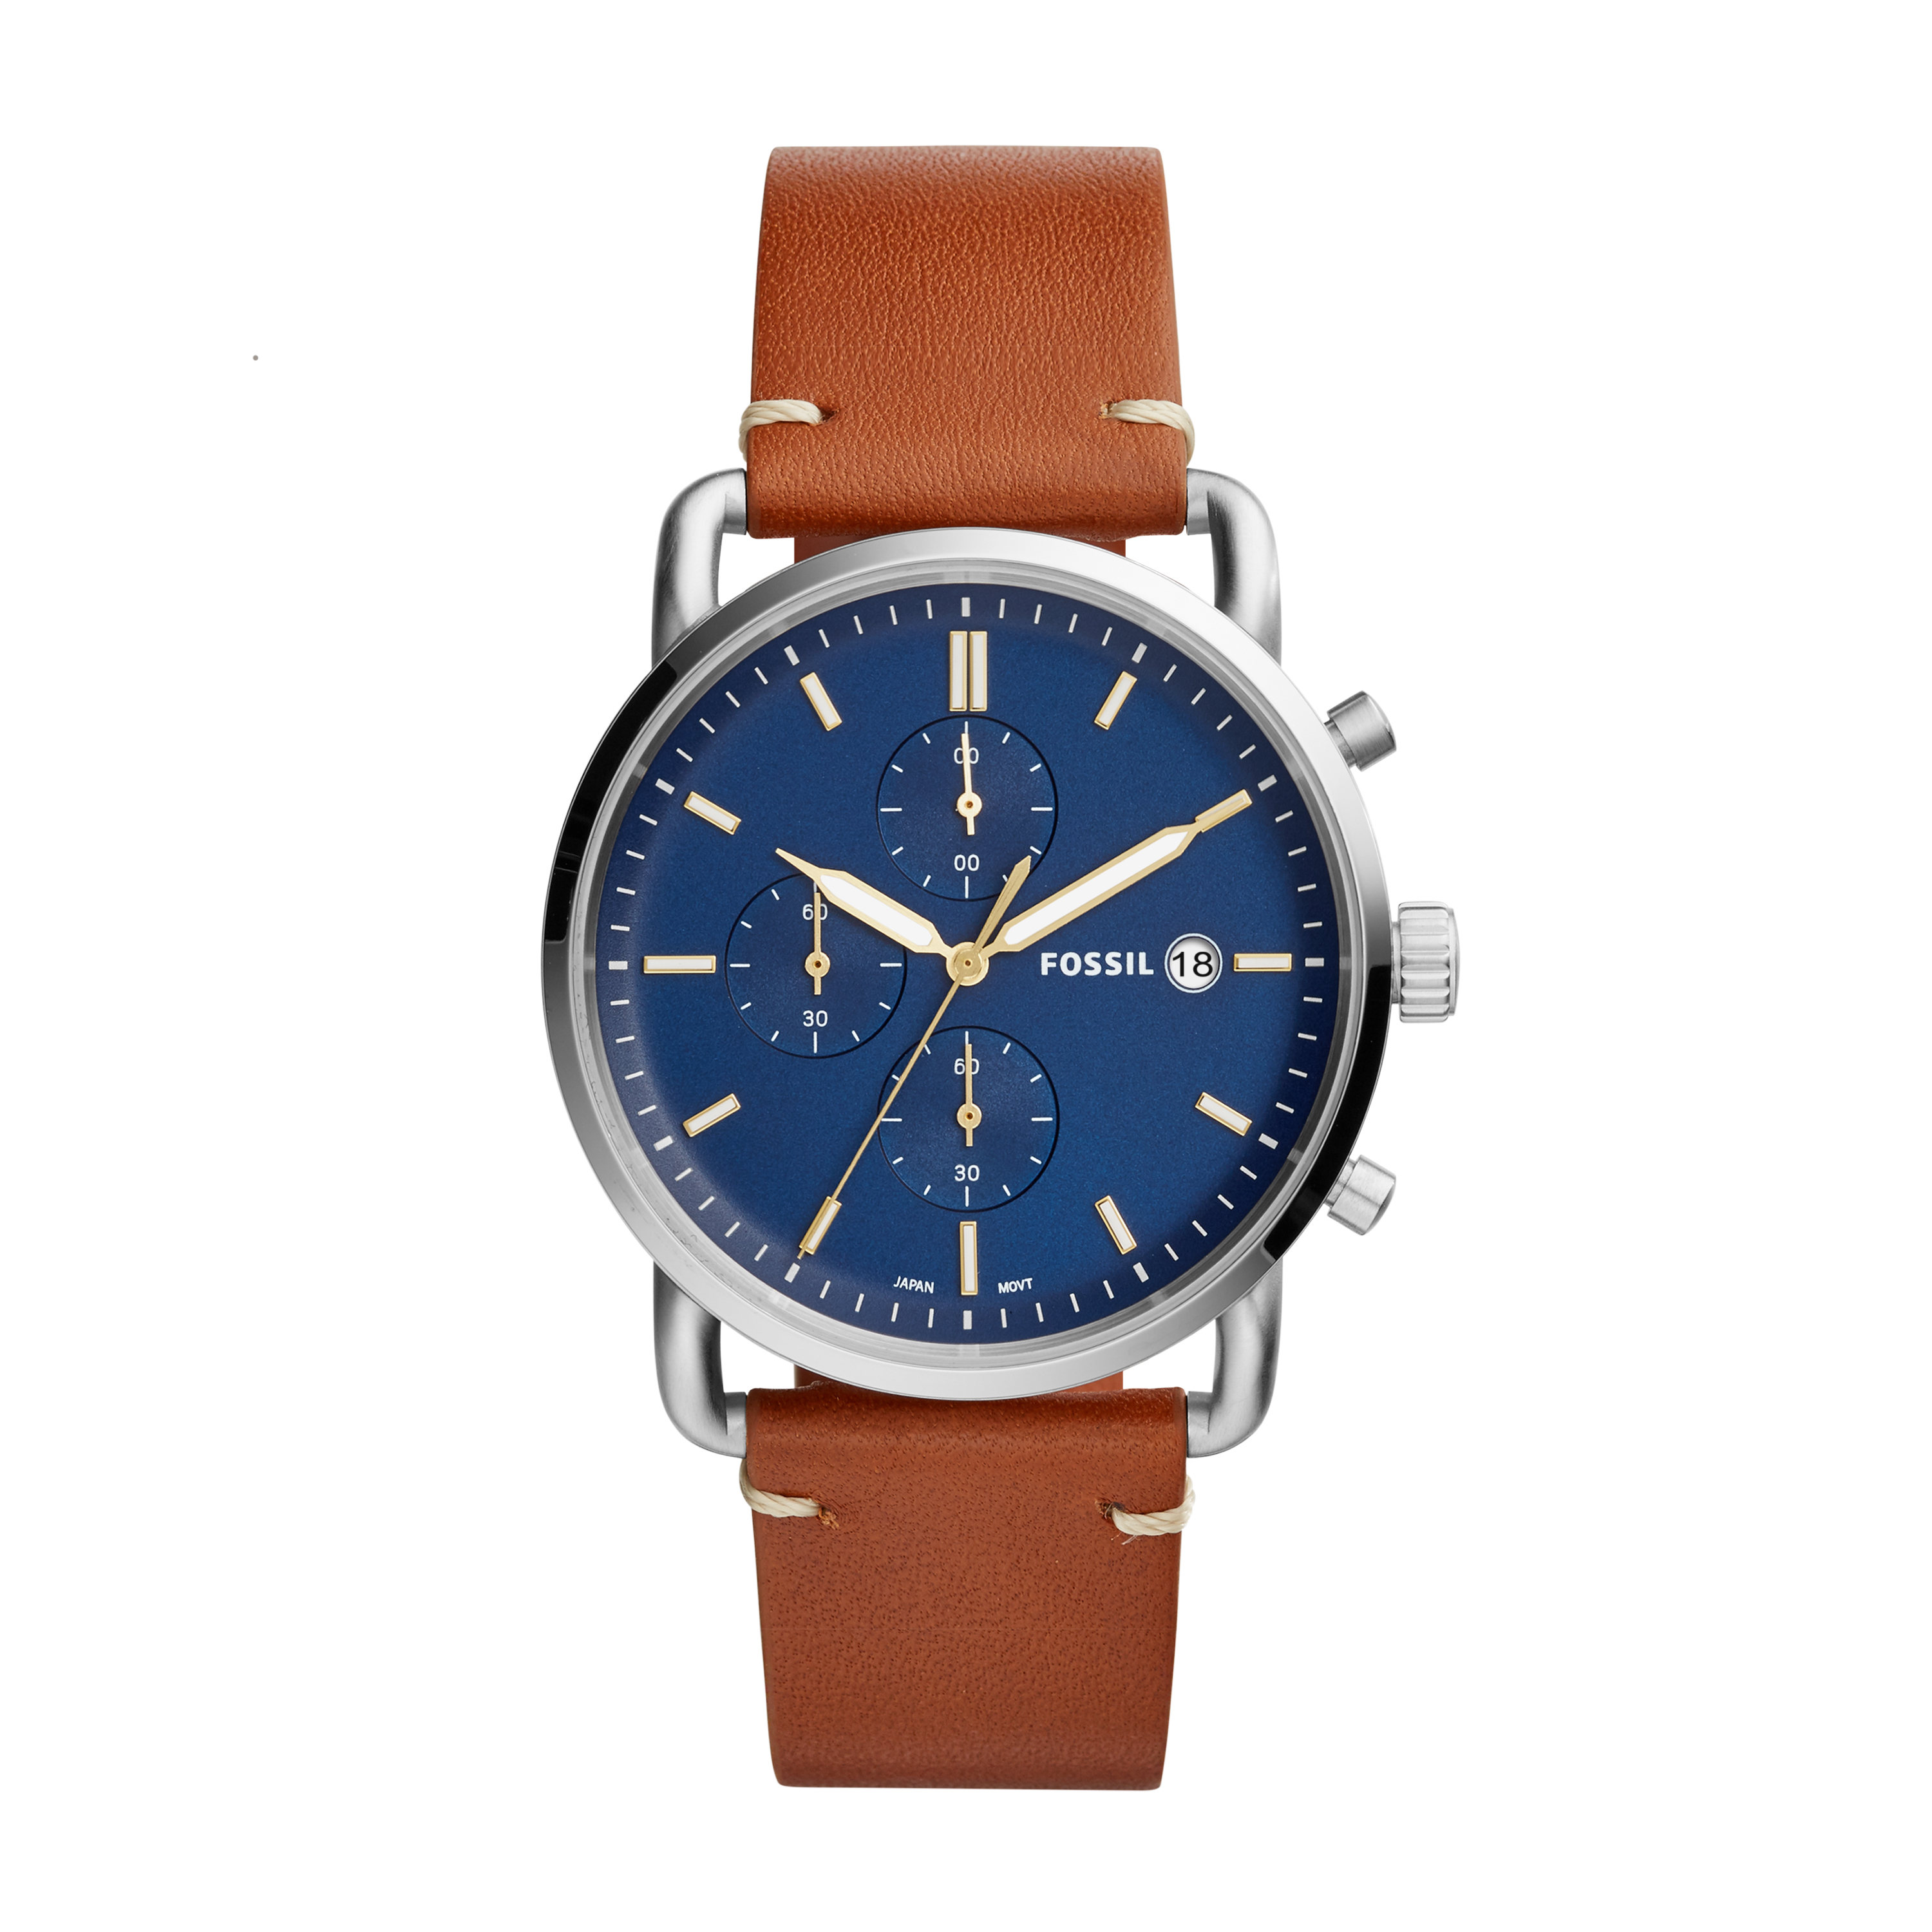 Fossil FS5401 Mens Chronograph Watch